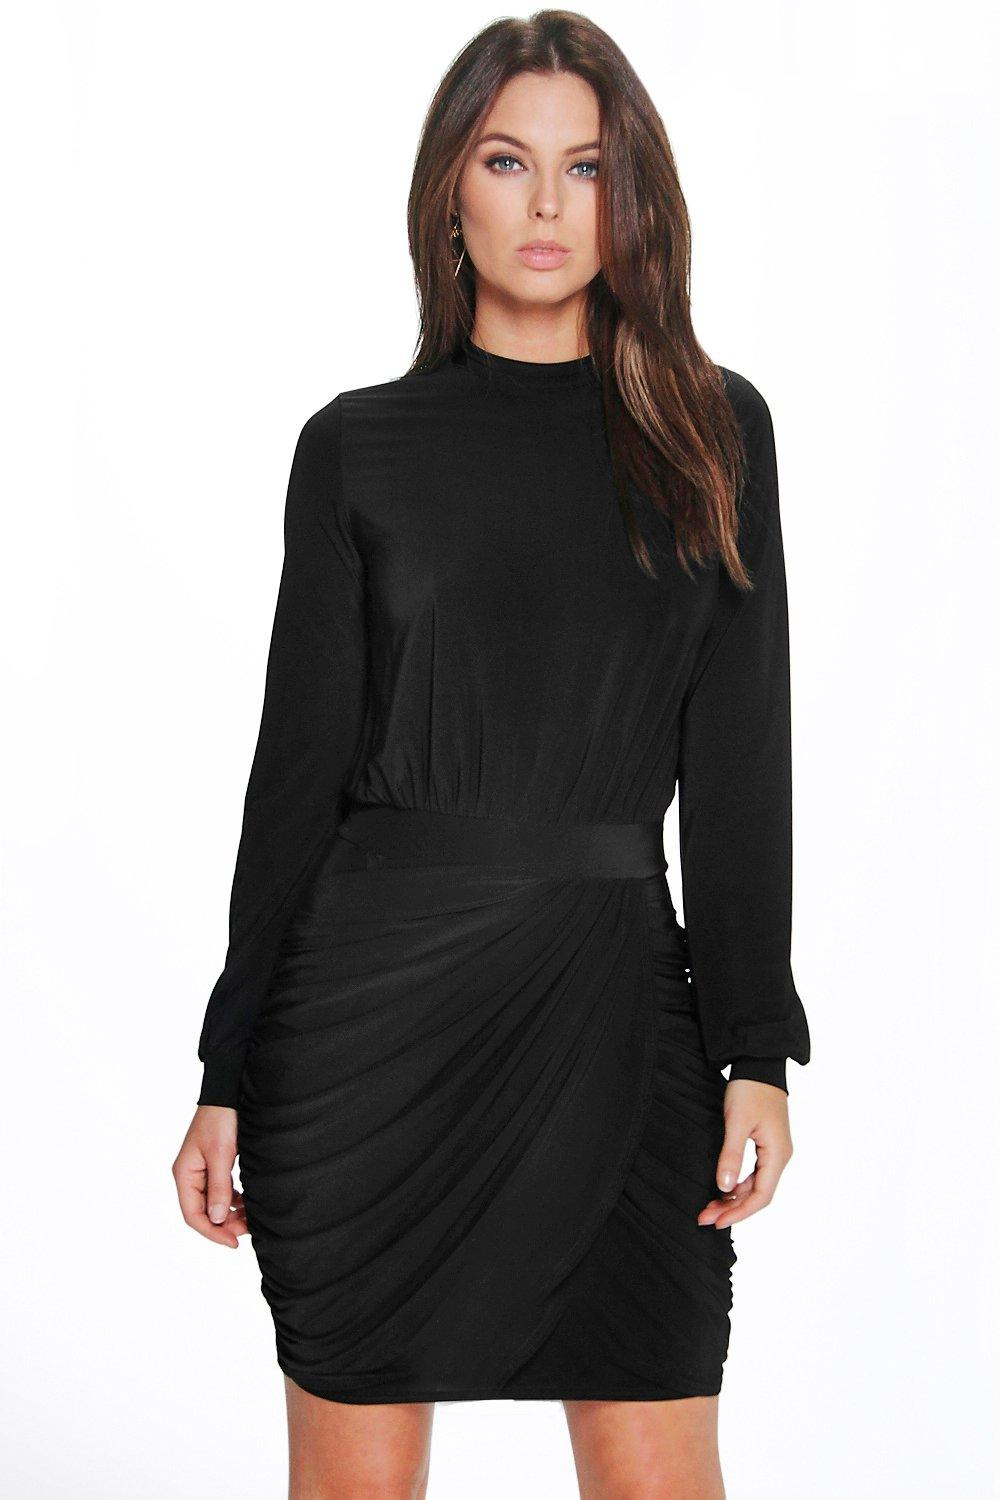 Sarah High Neck Ruched Skirt Slinky Bodycon Dress